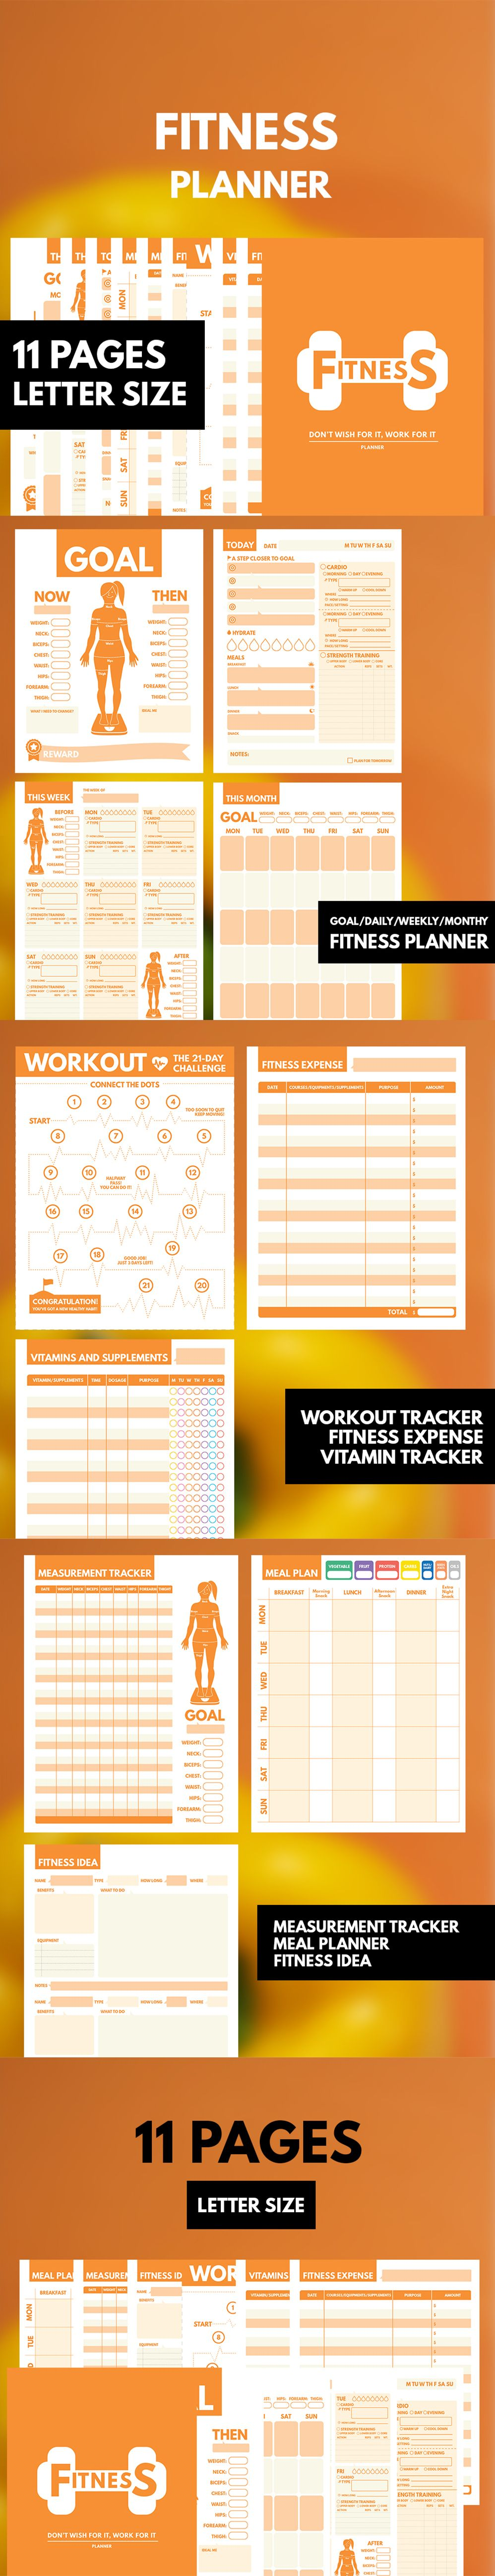 fitness planner printable letter  workout planner  fitness journal printable  health planner